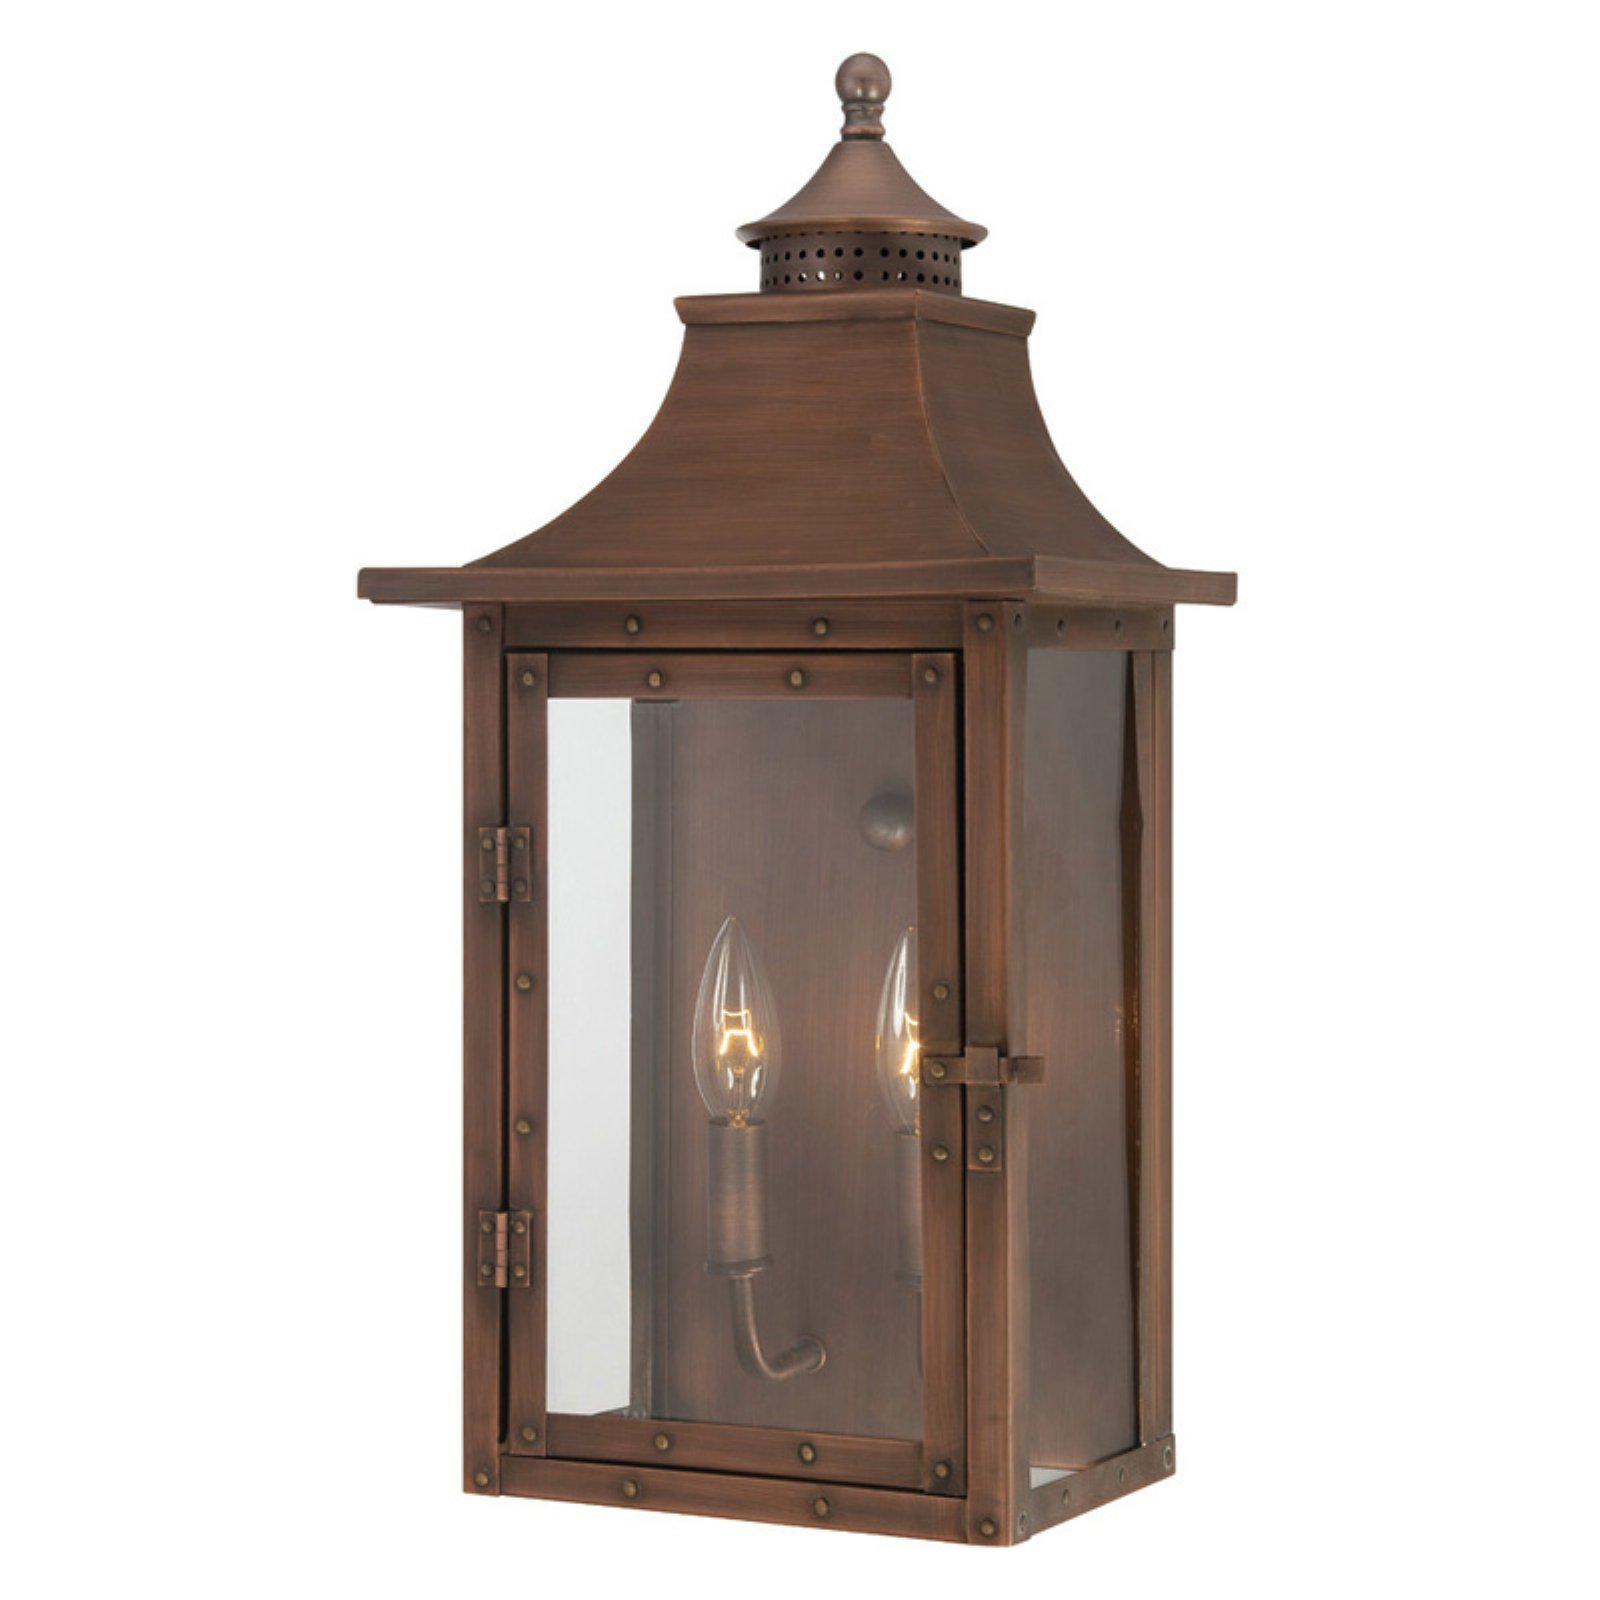 Acclaim Lighting St Charles 10 in. Outdoor Wall Mount Light Fixture